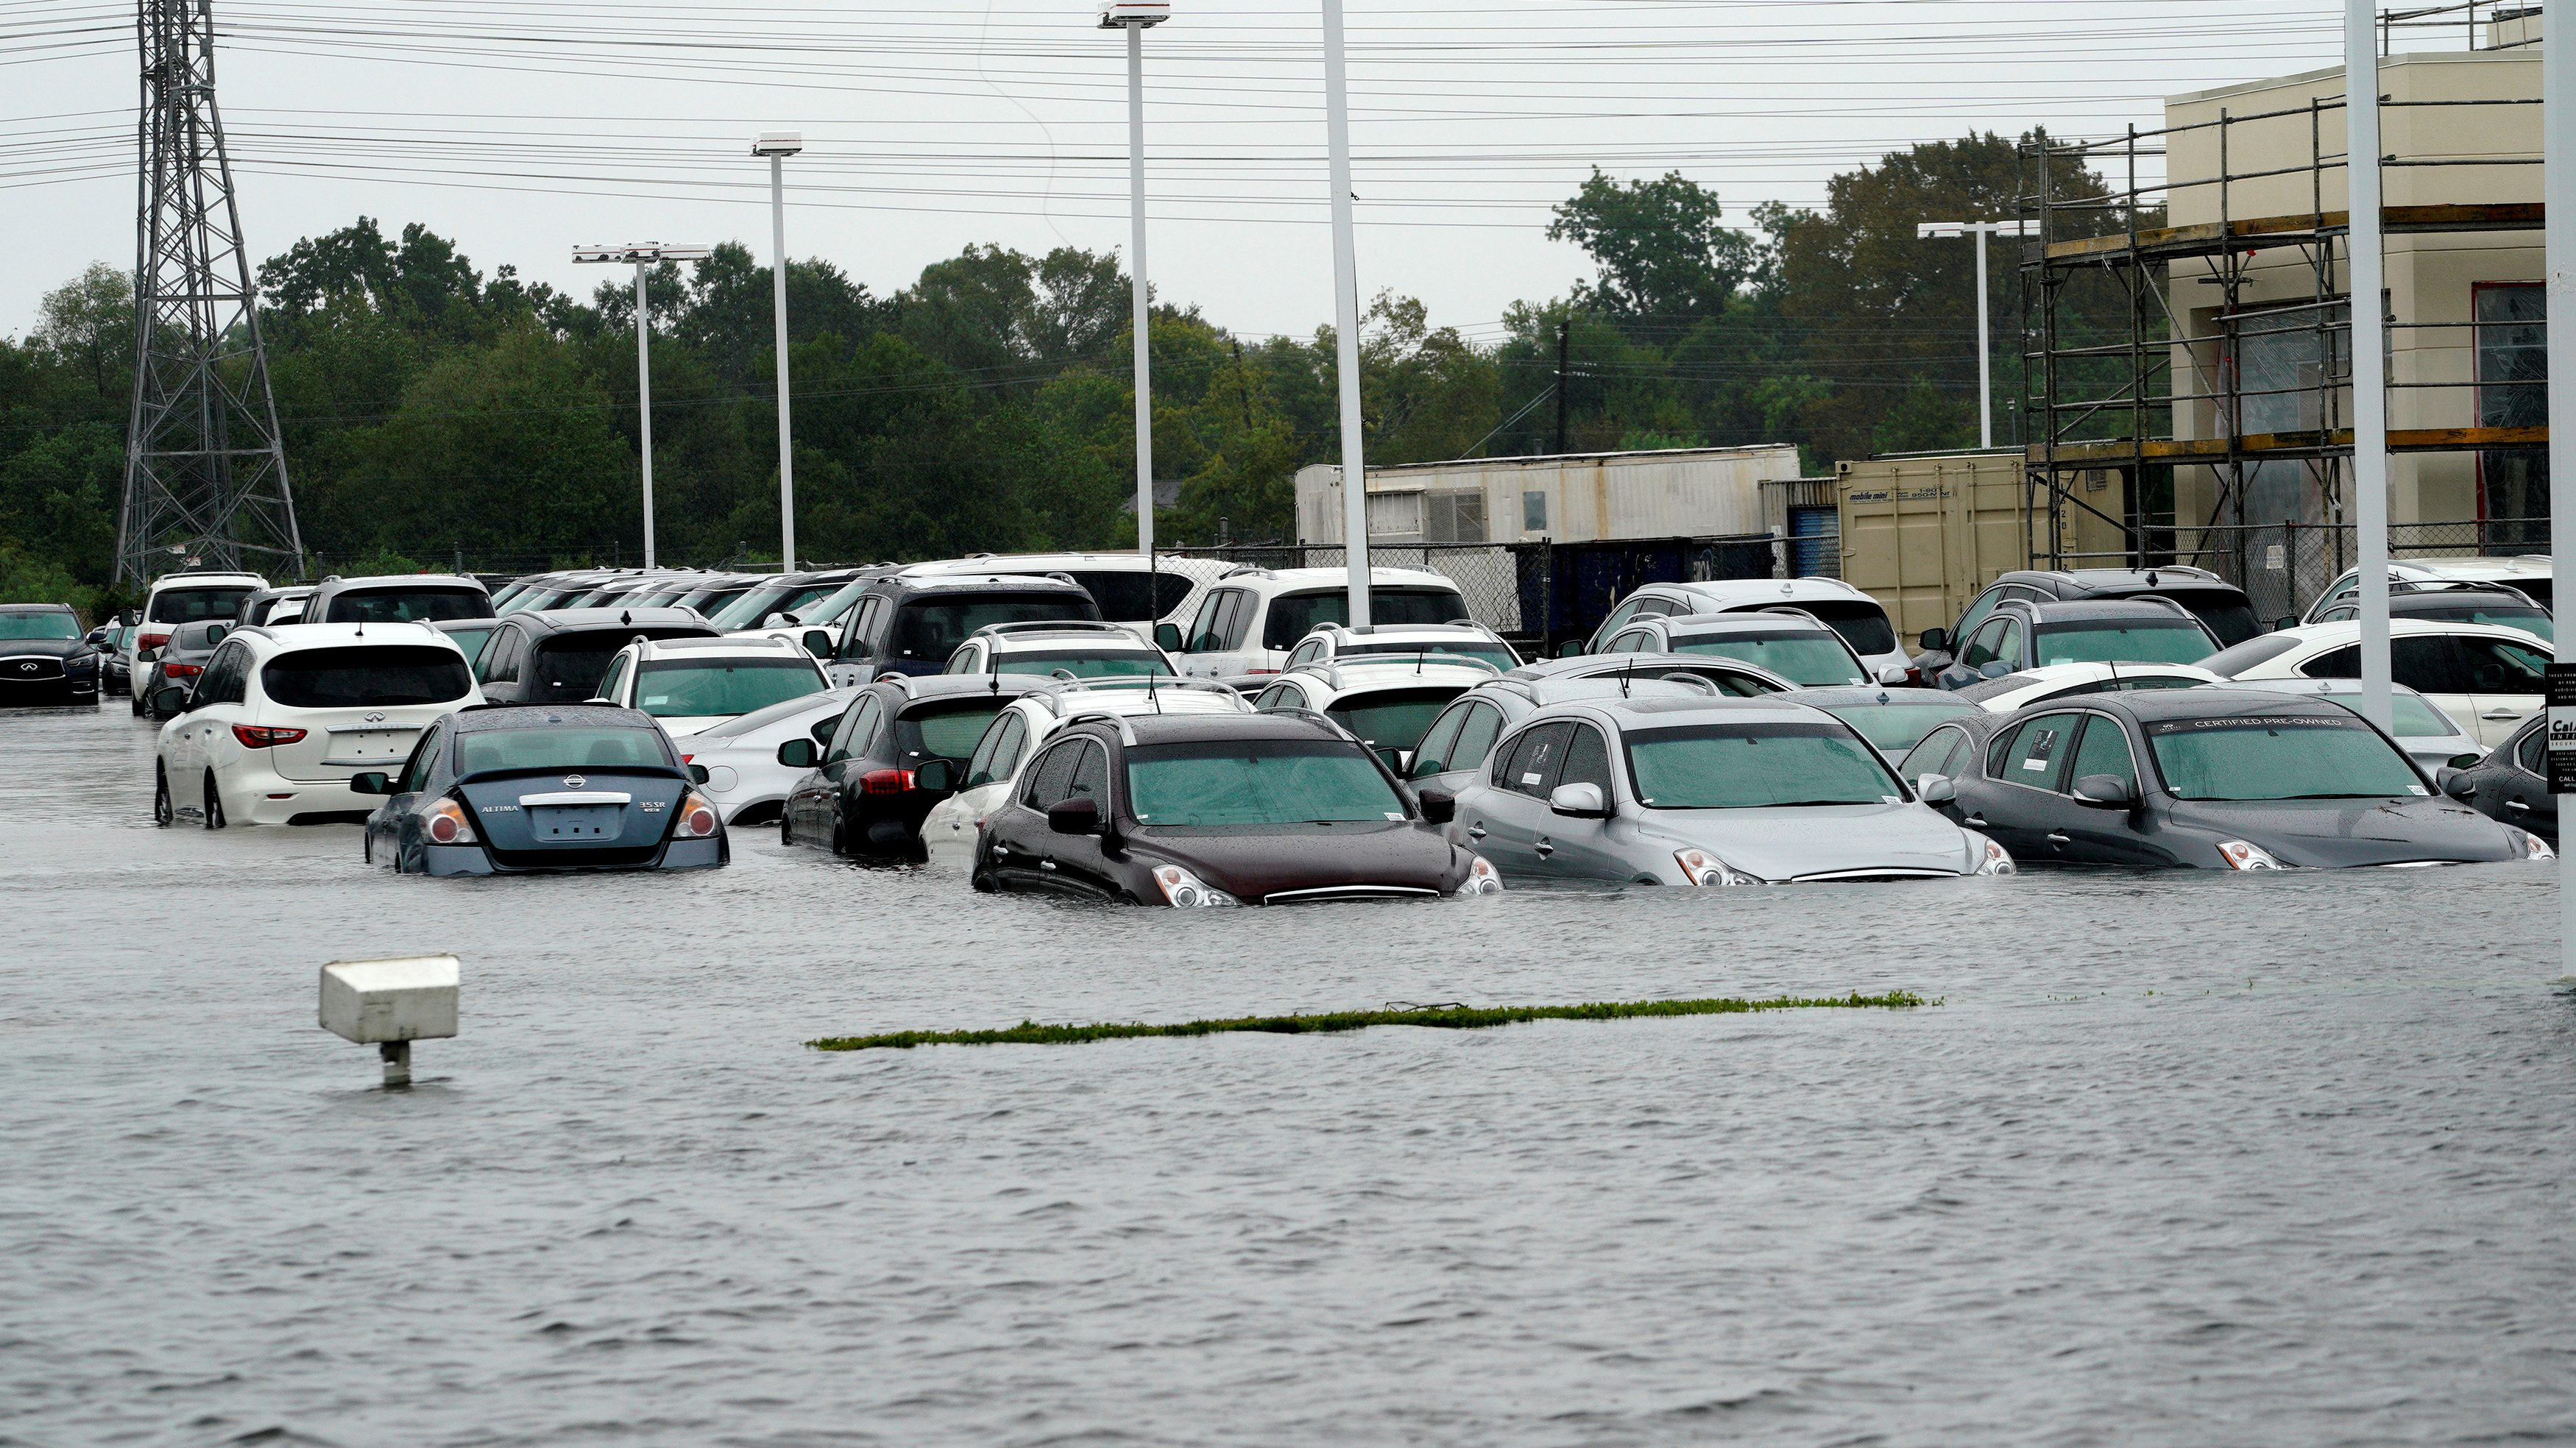 A car dealership is covered by Hurricane Harvey floodwaters near Houston, Texas August 29, 2017. REUTERS/Rick Wilking - RC14BD462170